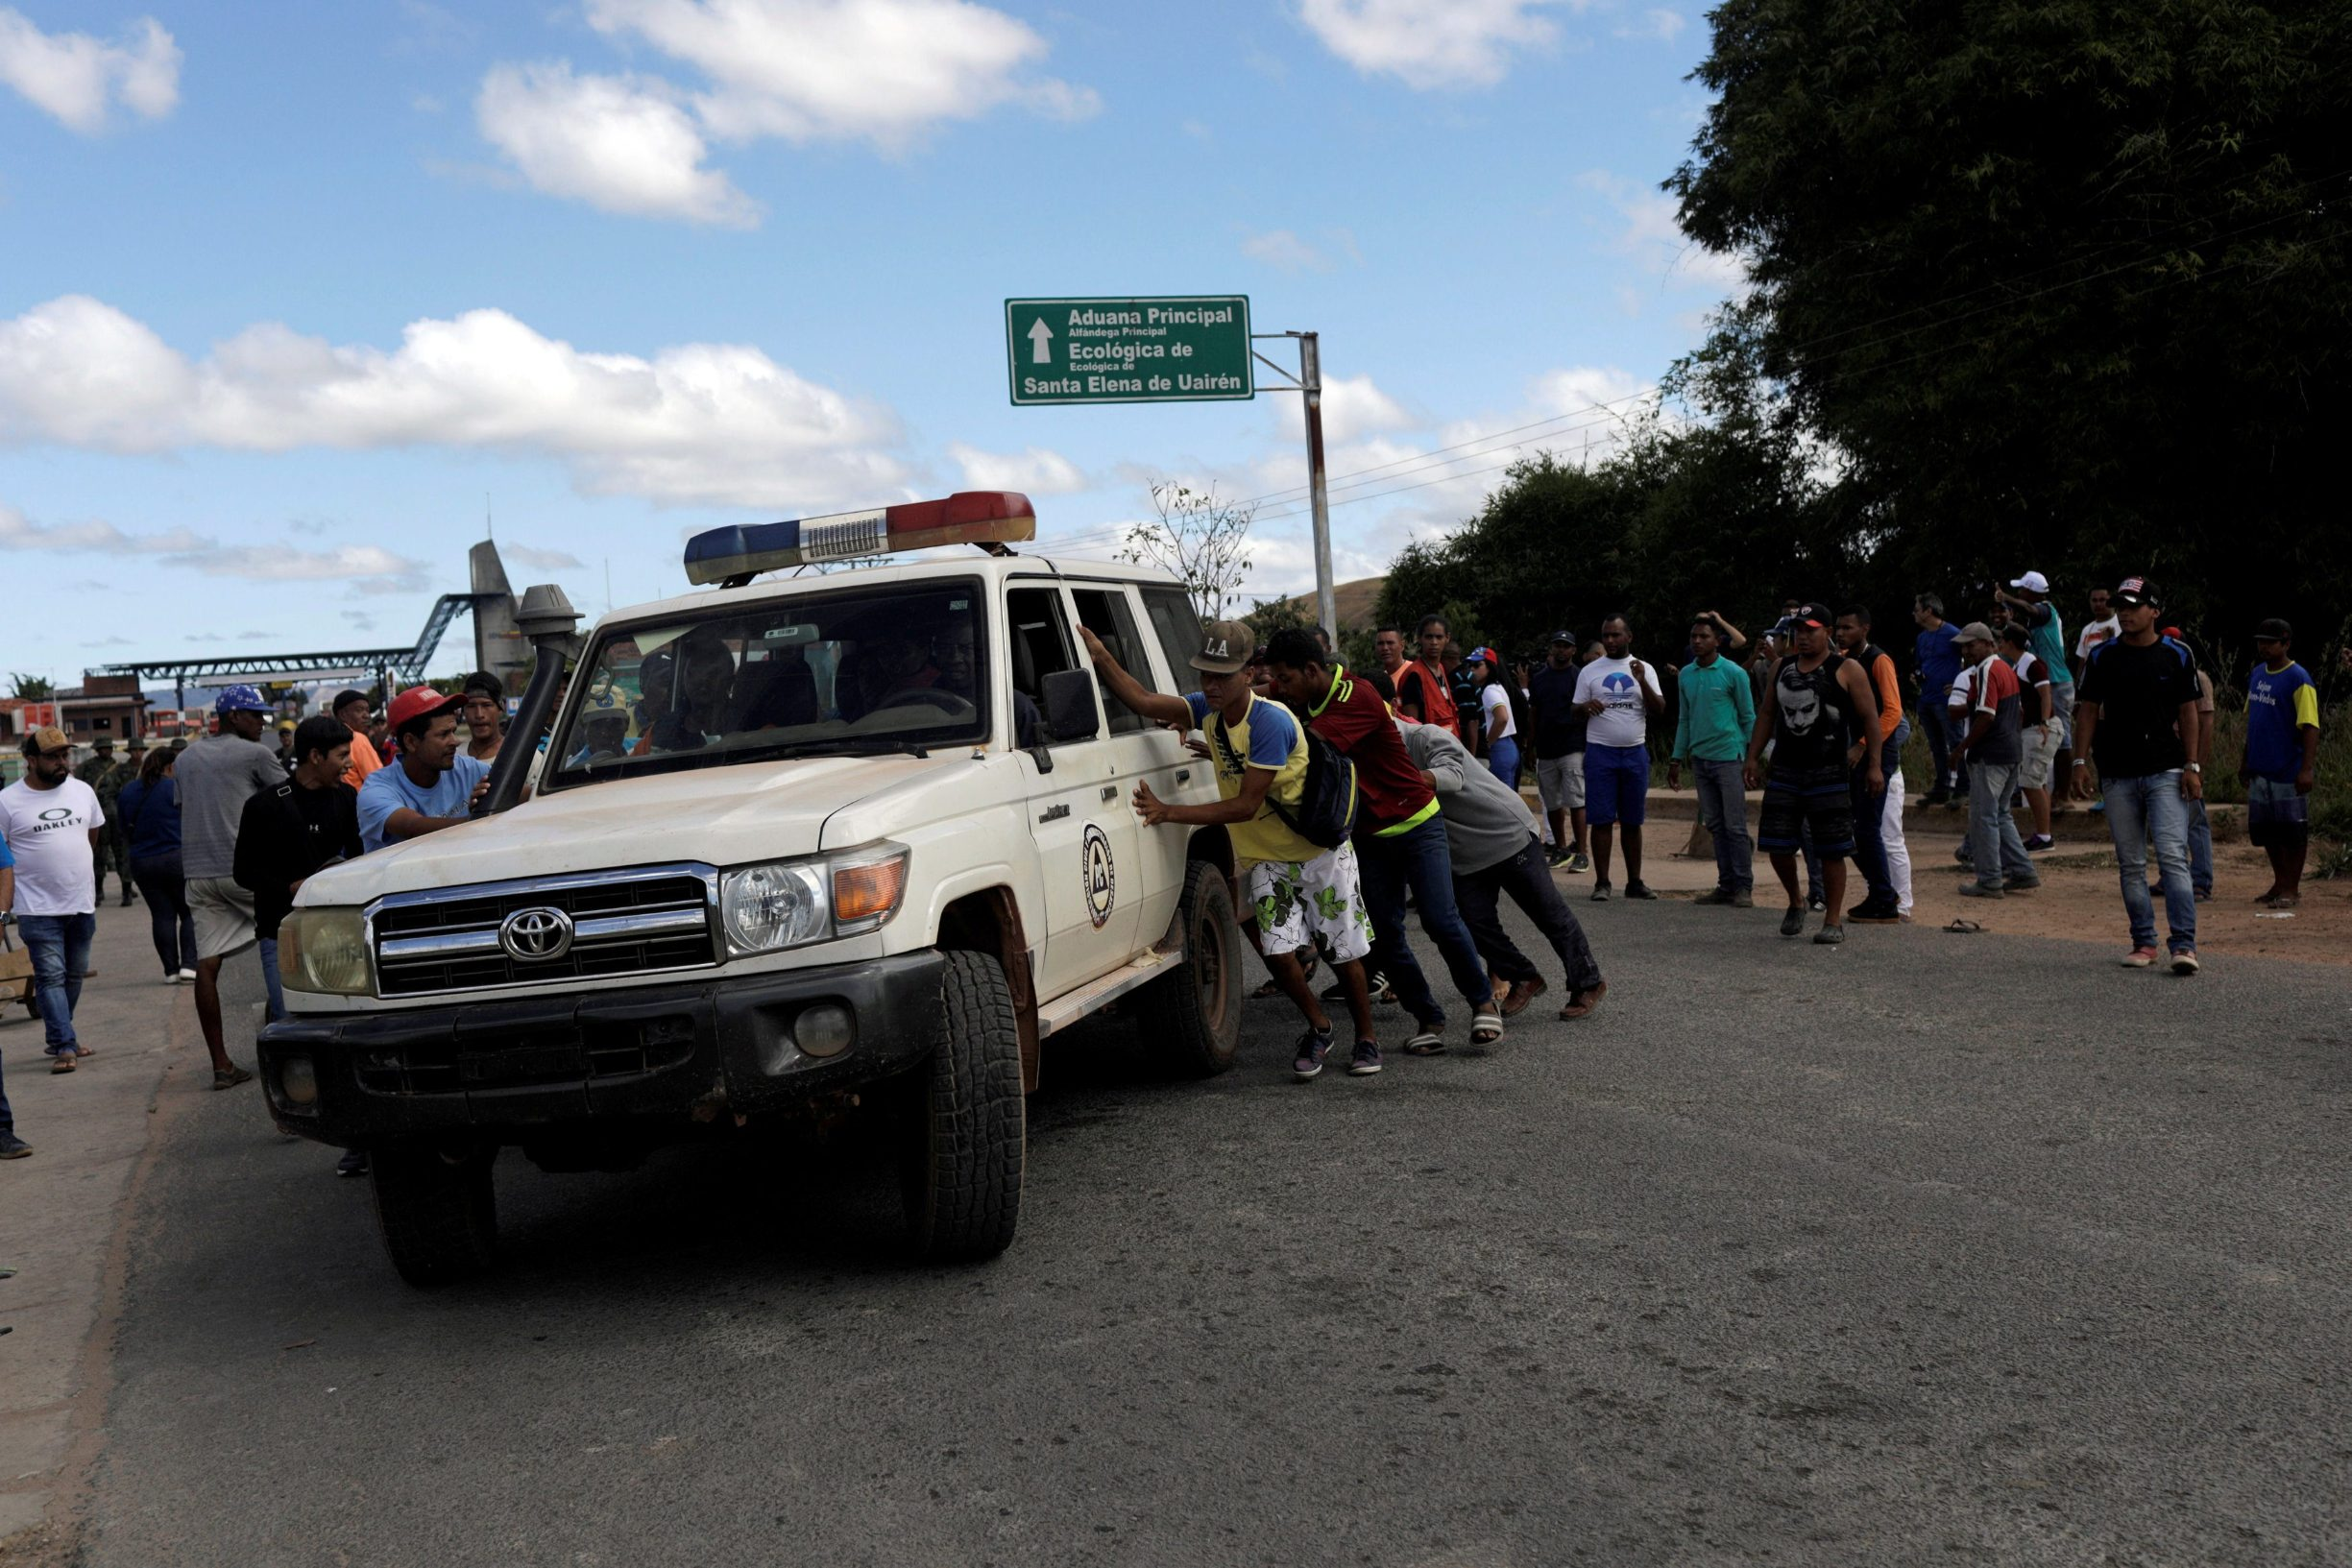 REFILE - CORRECTING LOCATION  An ambulance carrying people that were injured during clashes in the southern Venezuelan town of Kumarakapay, near the border with Brazil, is assisted by people at the border between Venezuela and Brazil, in Pacaraima, Roraima state, Brazil February 22, 2019. REUTERS/Ricardo Moraes